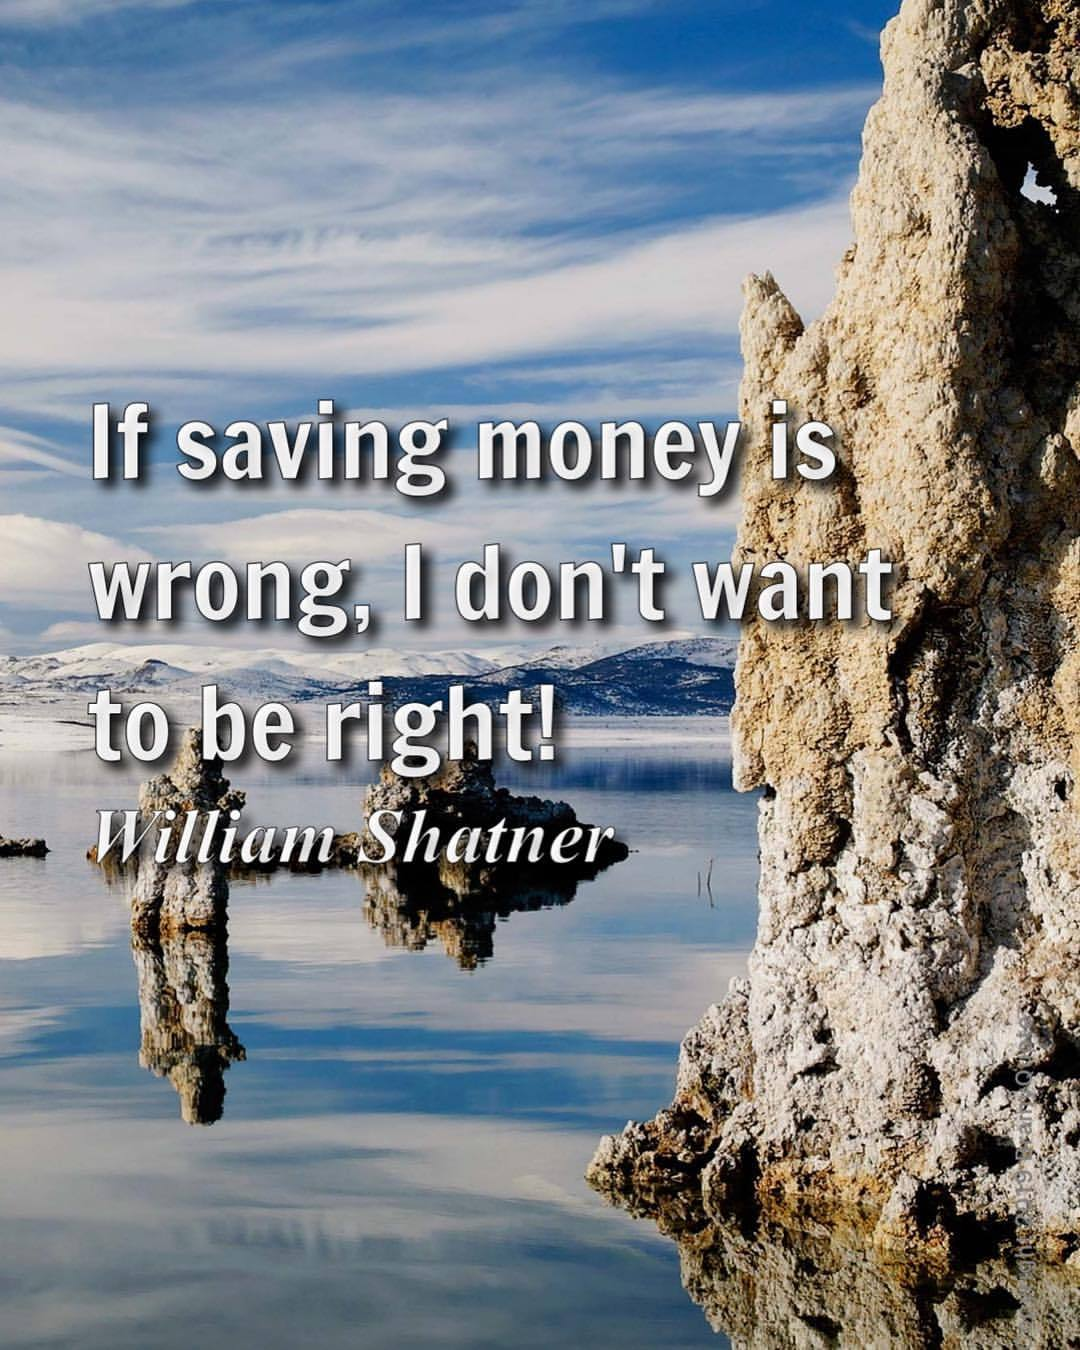 Fun quote If saving money is wrong, I don't want to be right!